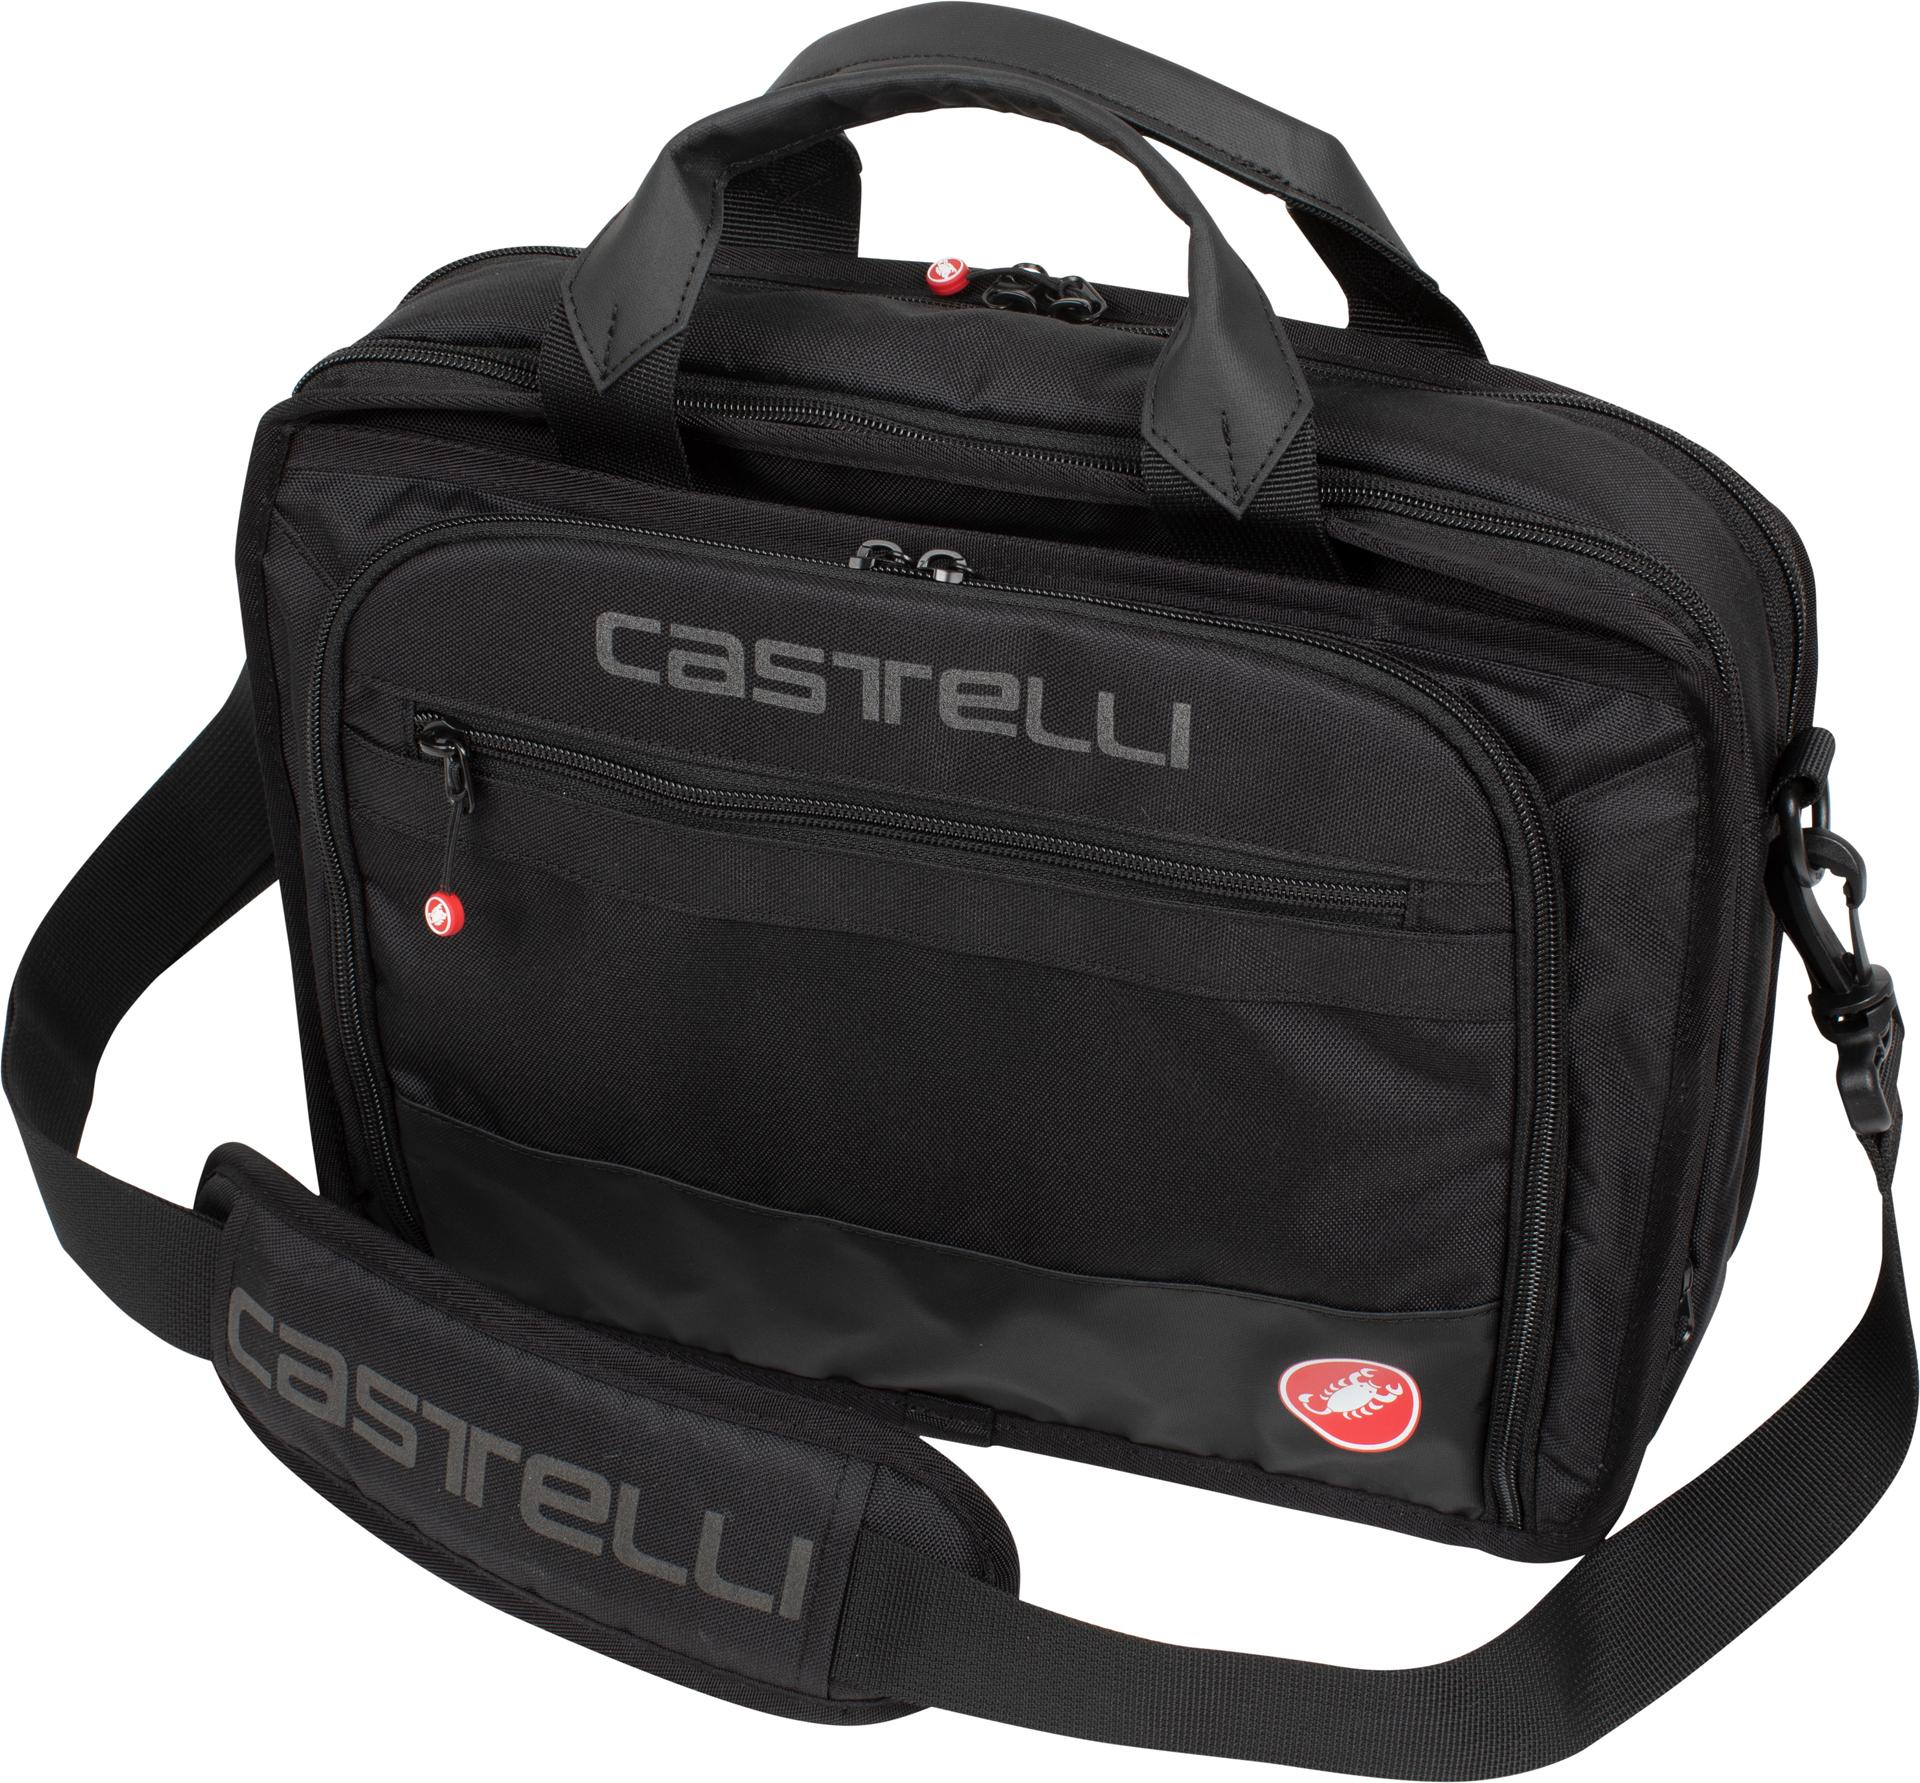 Castelli Casual tas Zwart  / CA Race Briefcase Black